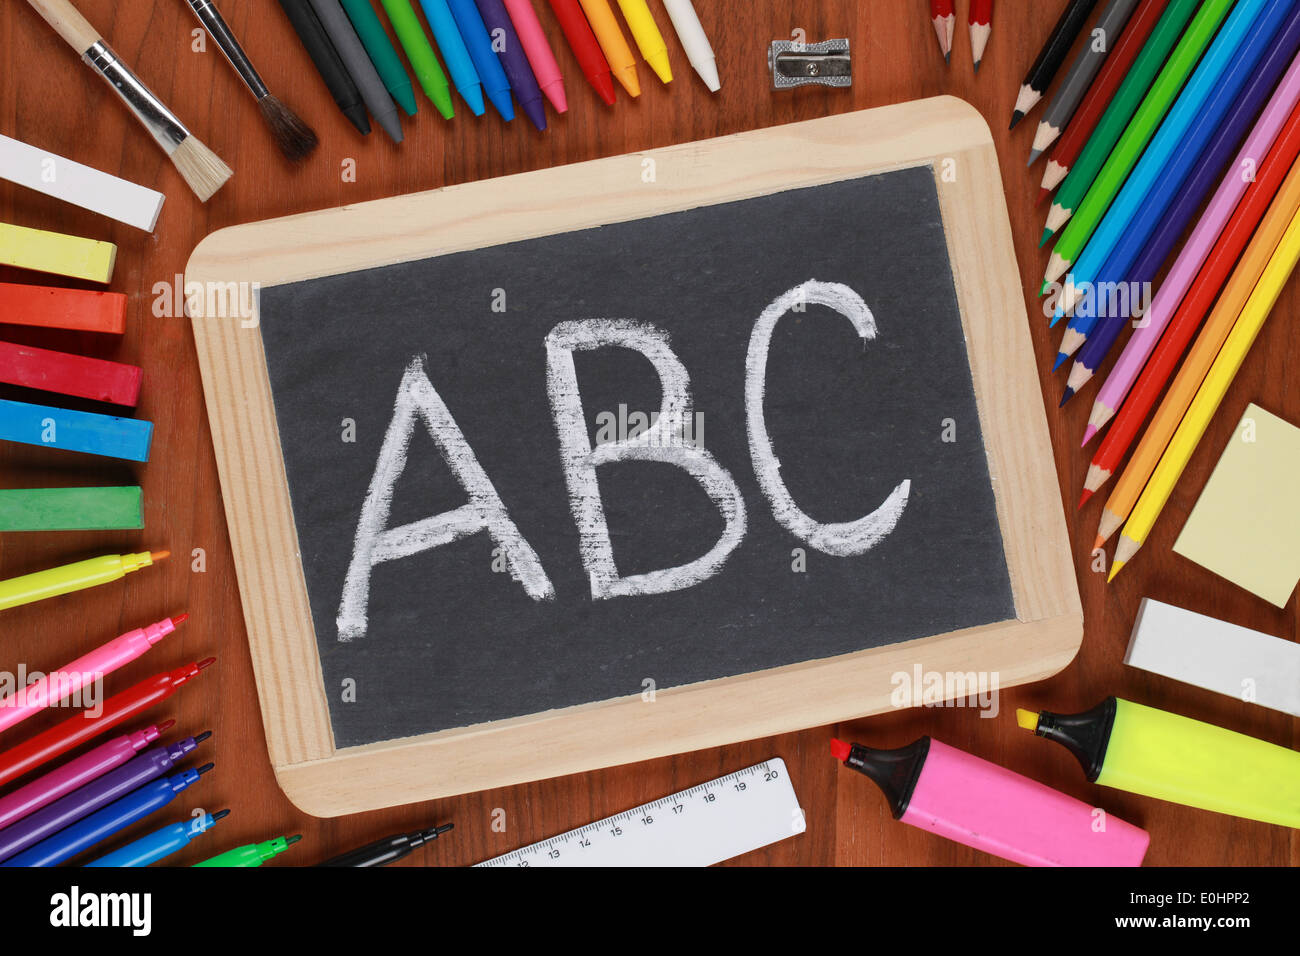 The letters ABC on a blackboard at school - Stock Image